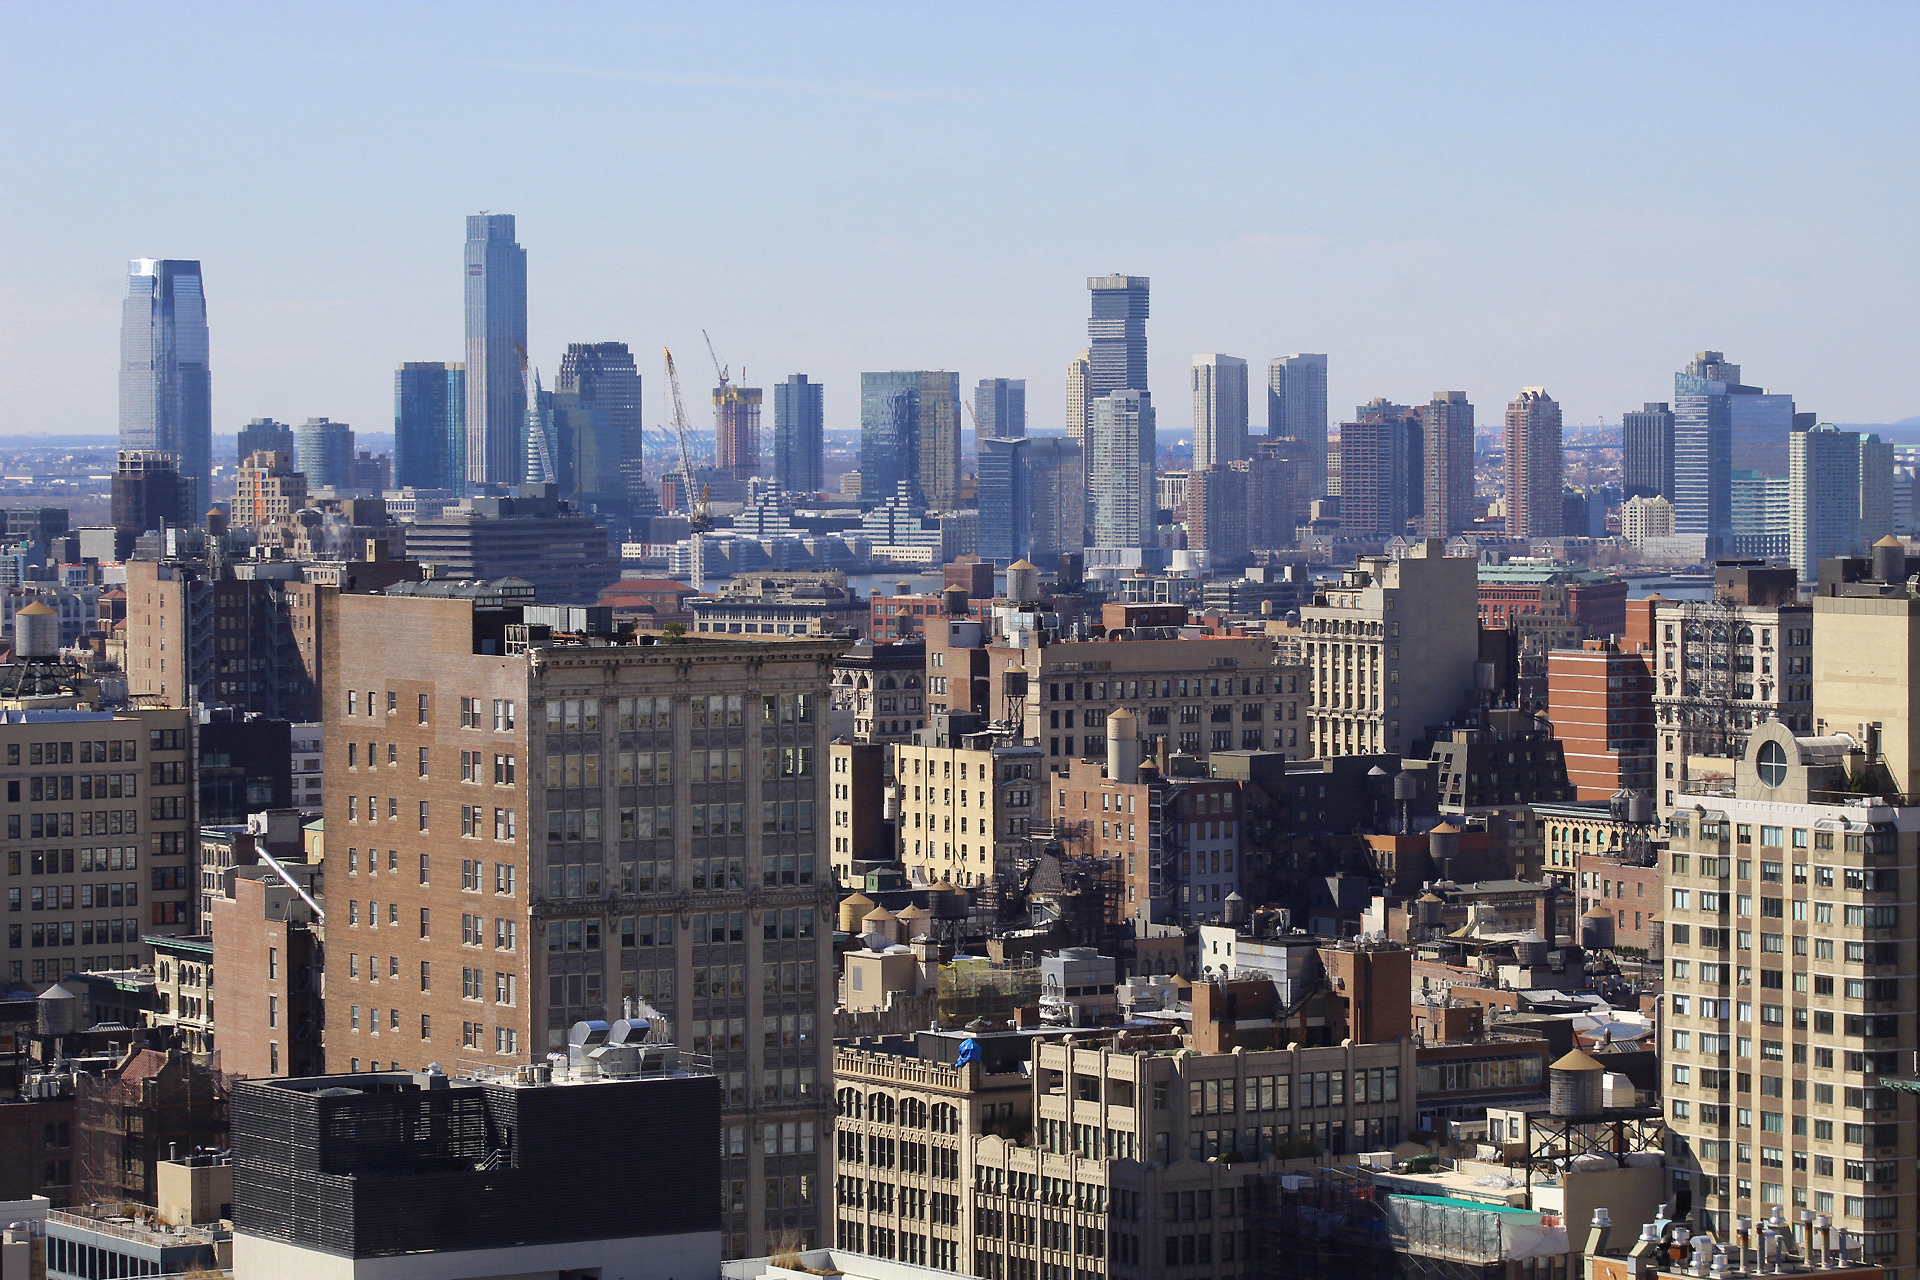 Jersey City in the background, photo by Michael Young